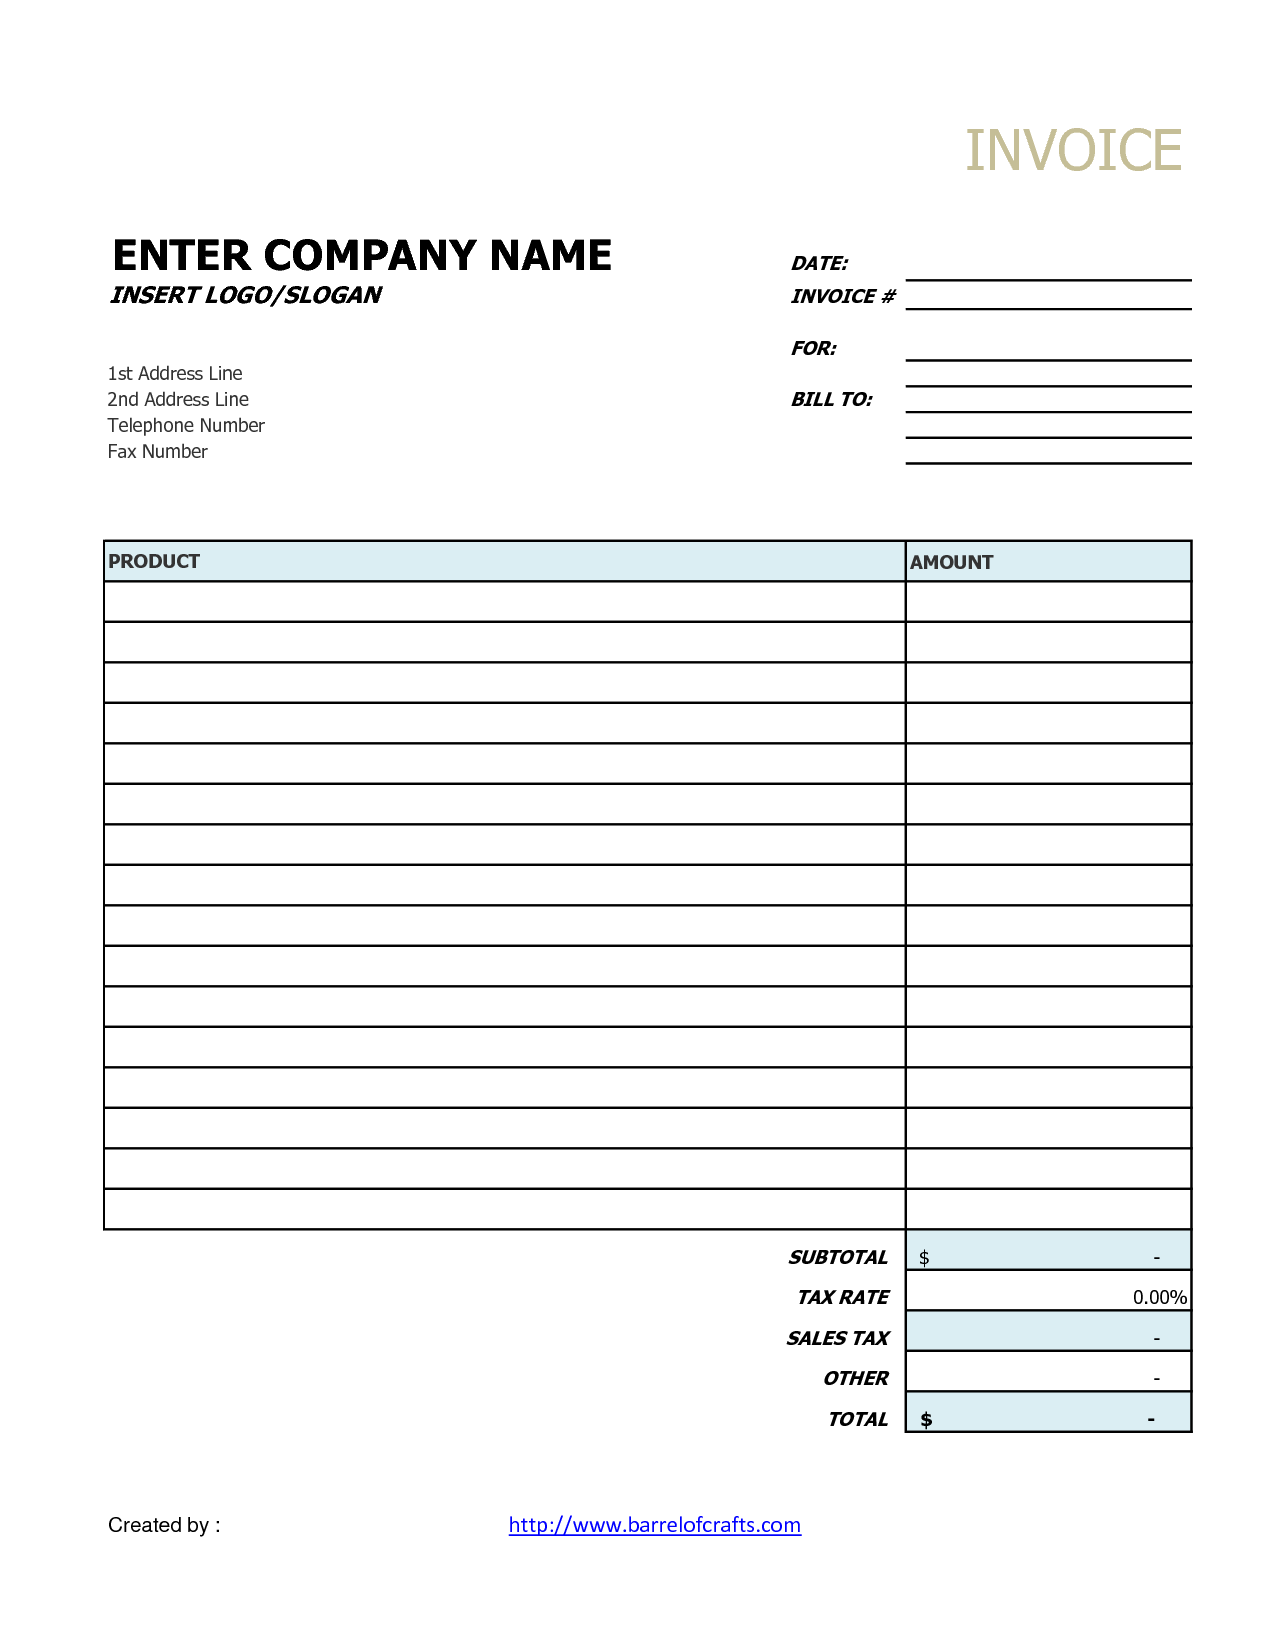 Just Invoices Word Generic Invoice Template  Invoice Example Missouri Vehicle Registration Receipt Excel with Best Receipt Scanner App Word Generic Invoice Template Creating A Invoice Pdf